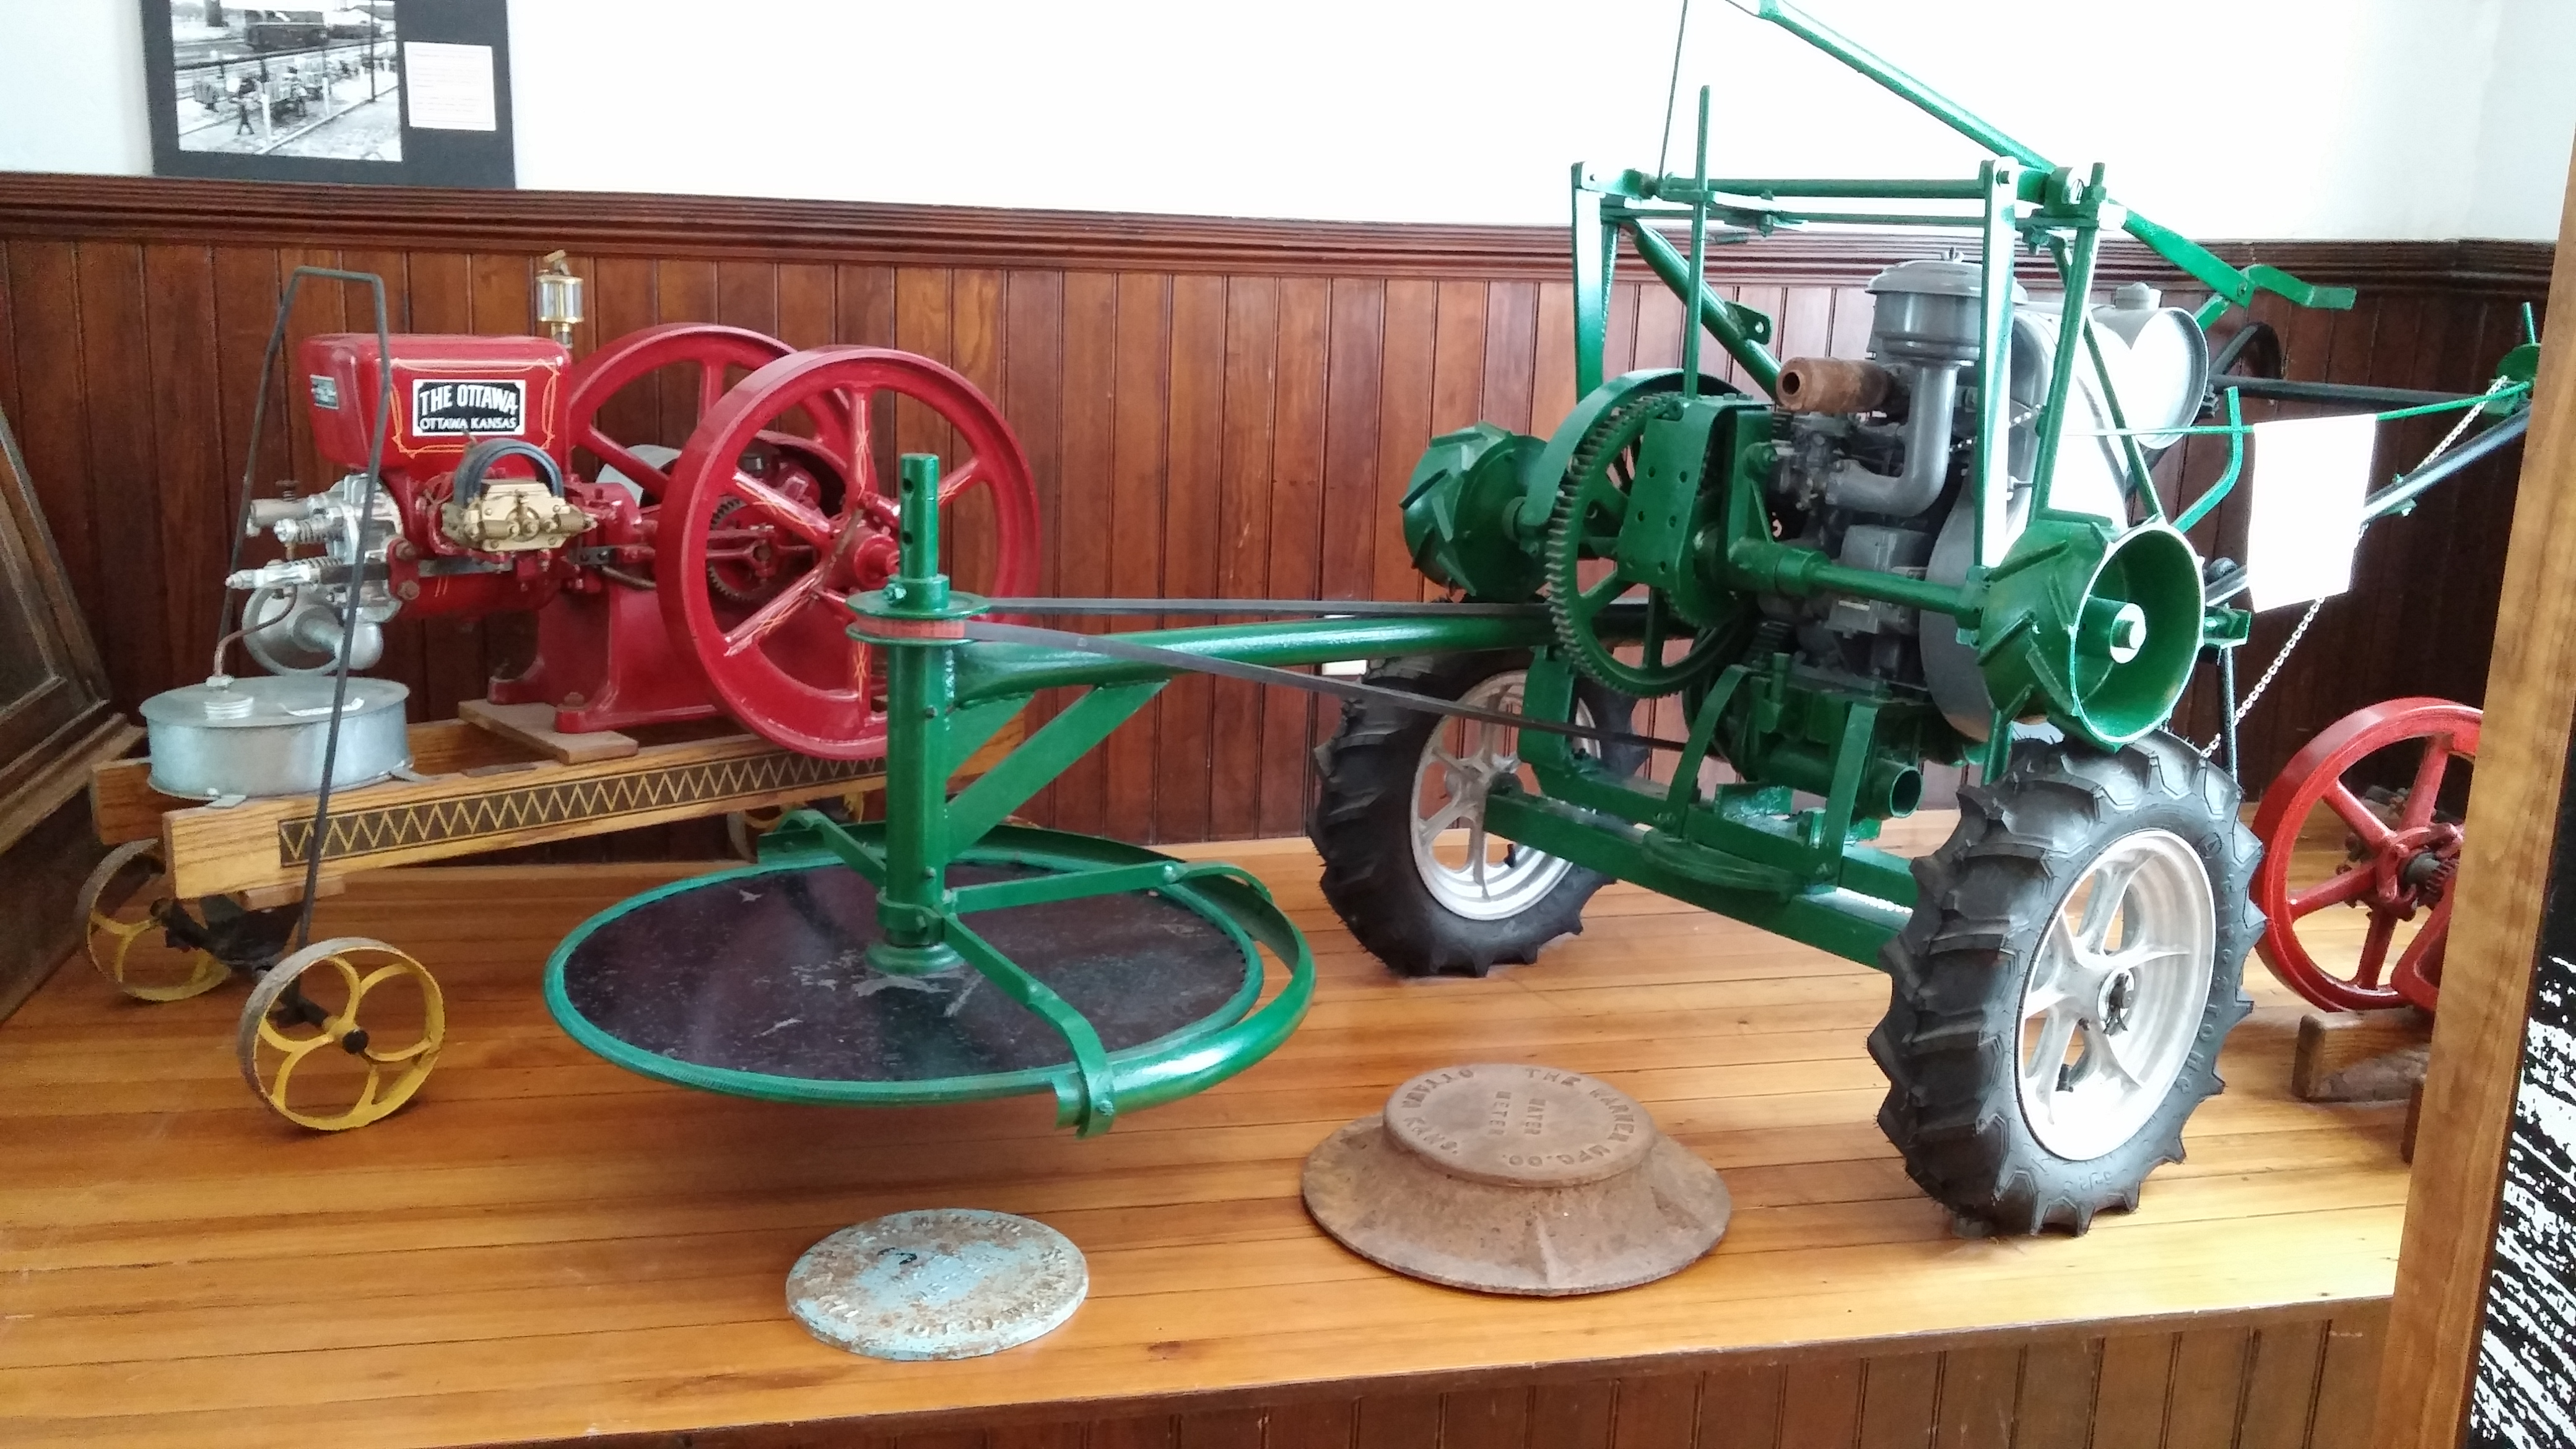 The industry room features artifacts from many local companies, including machines built by Warner Manufacturing.